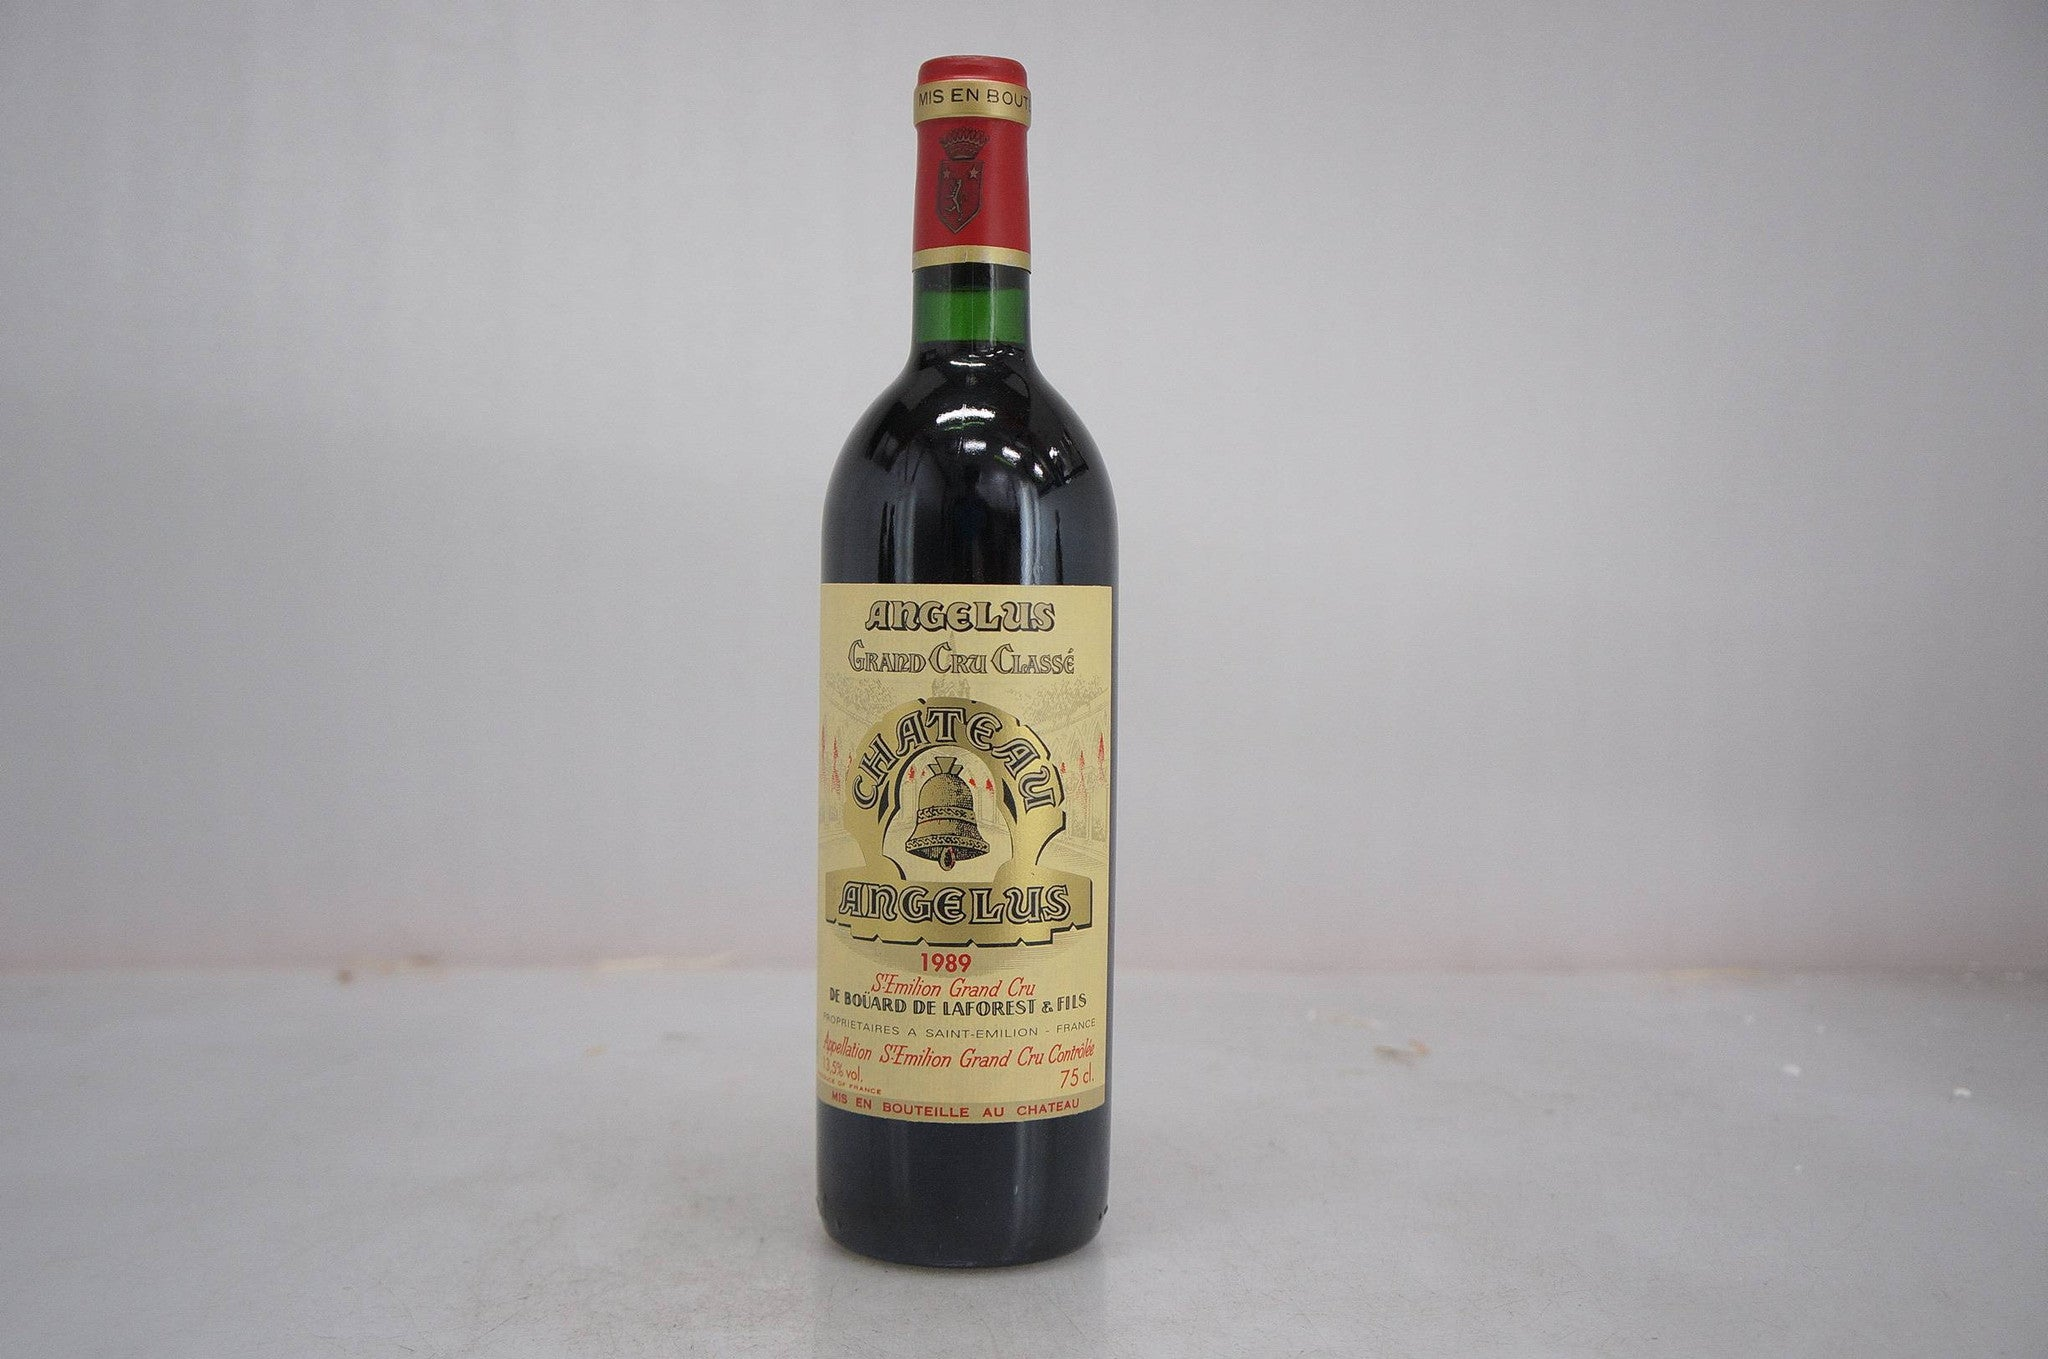 Chateau angelus 1989 ginsberg chan wine merchants asia for Chateau angelus